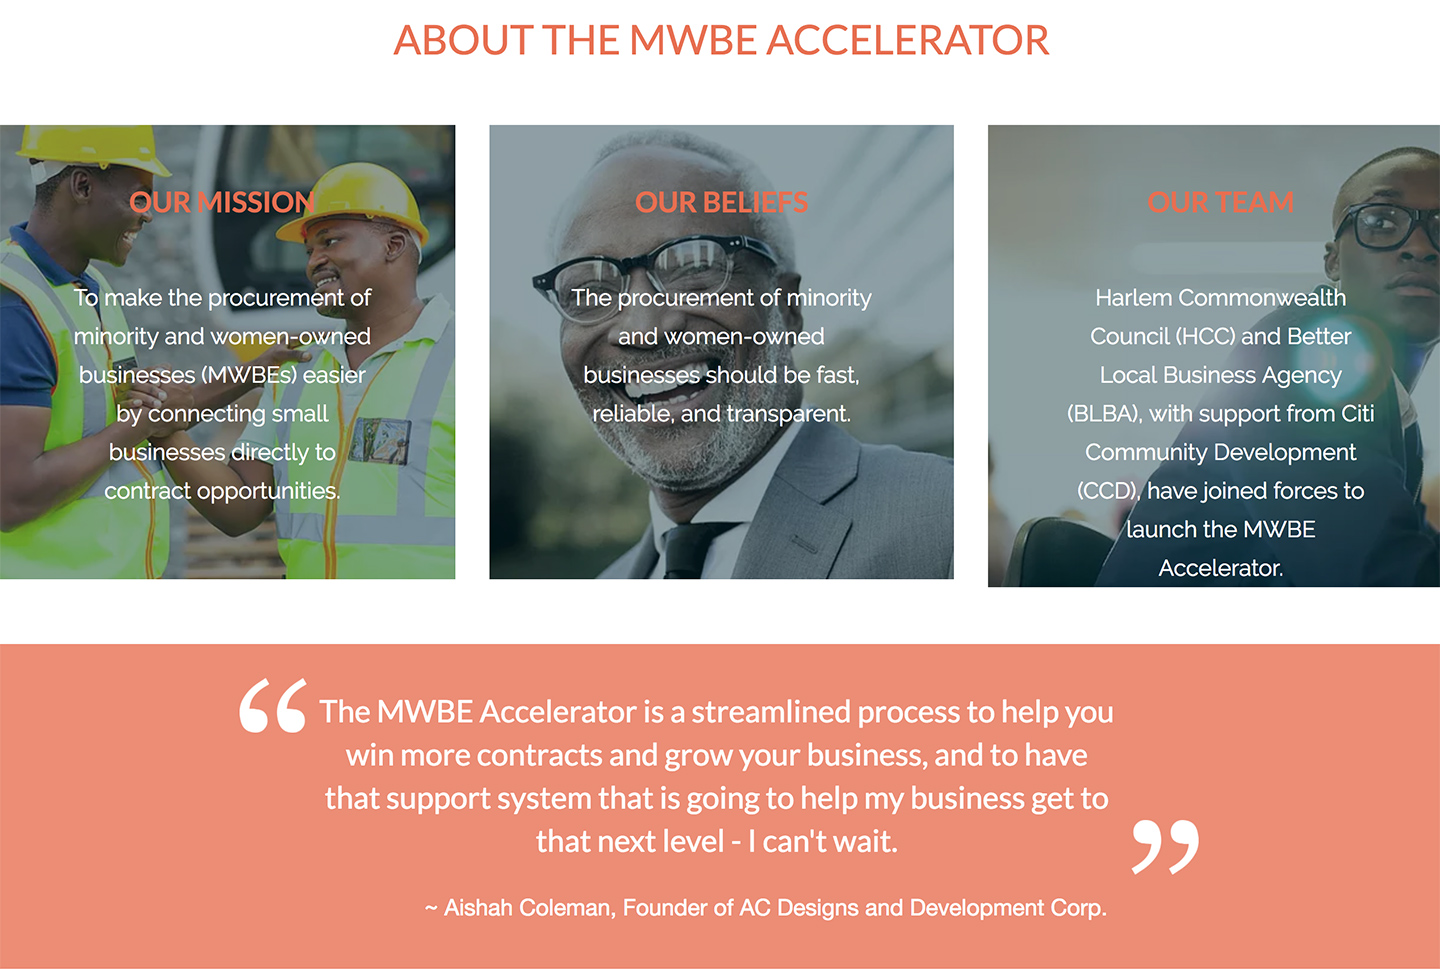 MWBE Accelerator: MWBE Accelerator About Us Silos